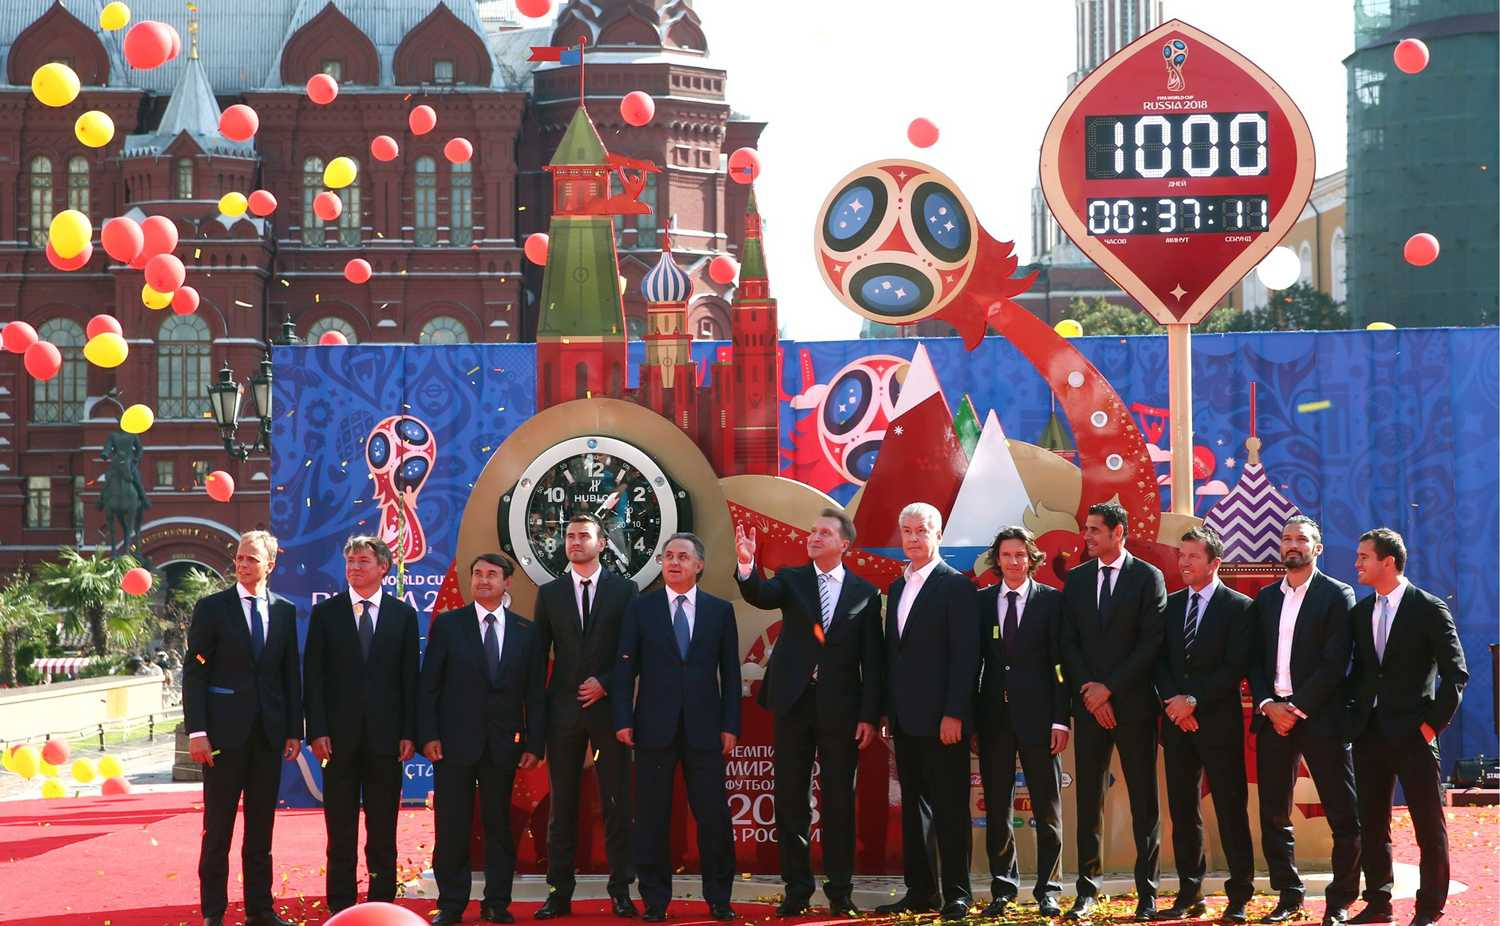 Officials attend a ceremony to celebrate the beginning of a 1,000-day countdown until the start of the 2018 World Cup in September 2015. (Photo via Wikimedia Commons)